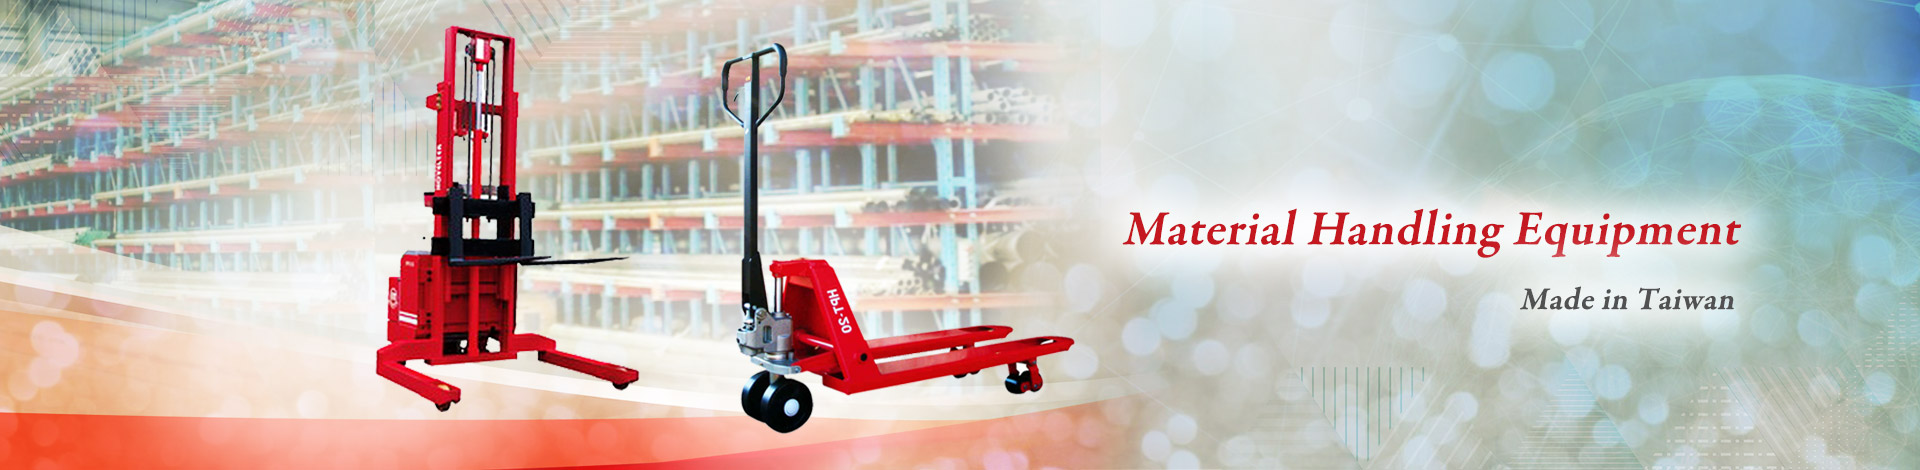 Noveltek Industrial Manufacturing Inc. is a leading manufacturer specialized in Pallet Jet, Lift Table, Walkie Stacker.